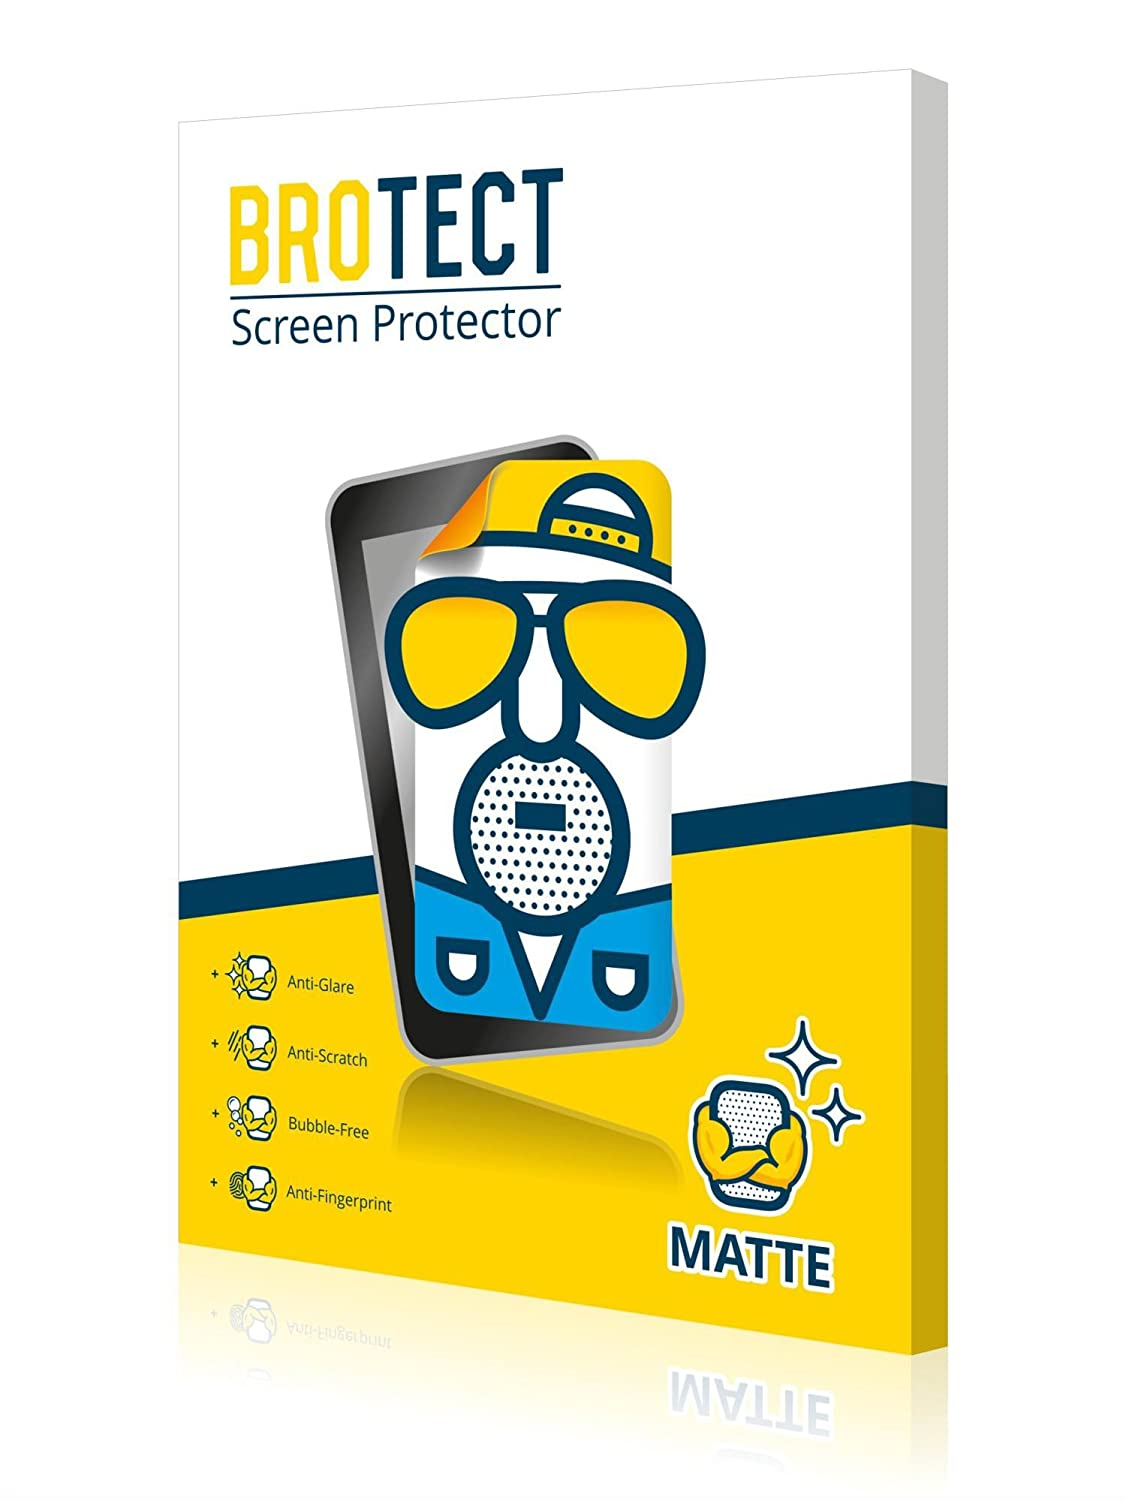 2x BROTECT Matte Screen Protector for Mamiya Leaf Credo 40, Matte, Anti-Glare, Anti-Scratch